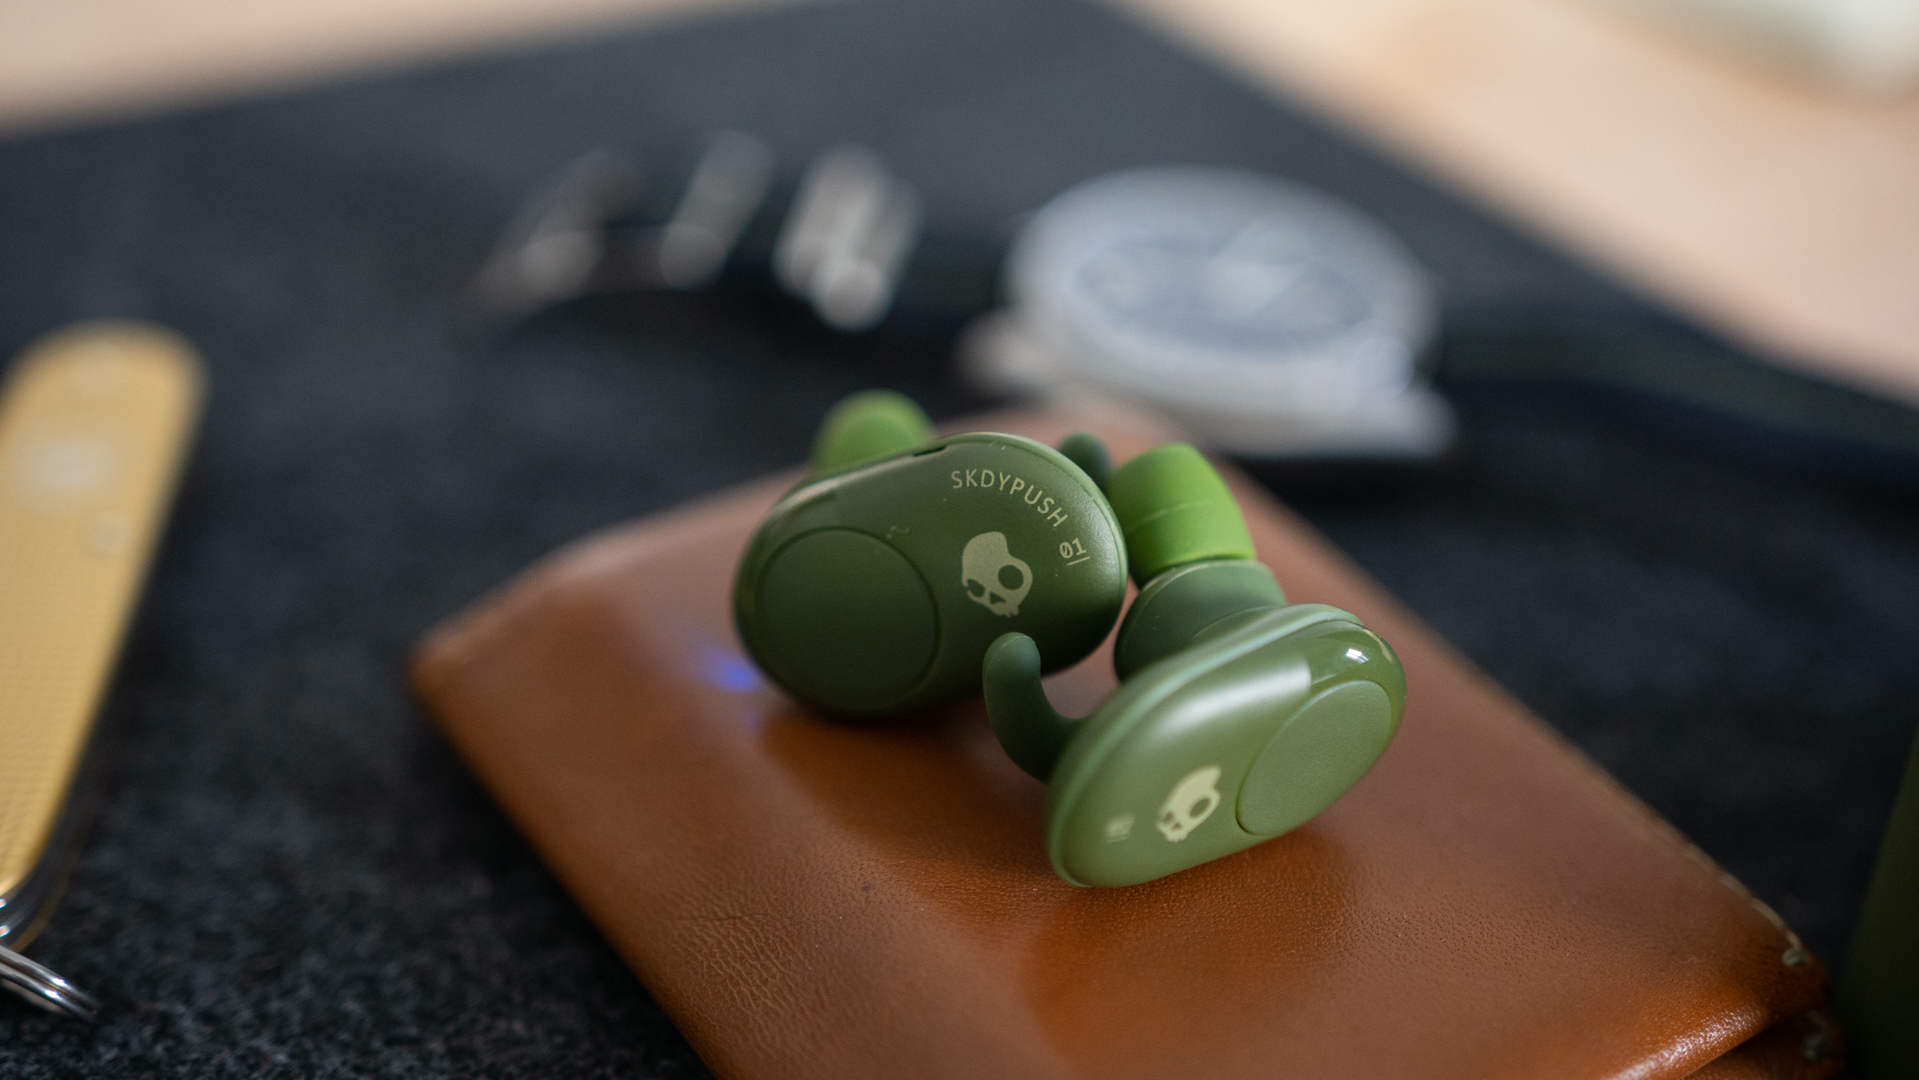 f403e30a67c Pictured are the Skullcandy Push true wireless earbuds next to each other,  with a close